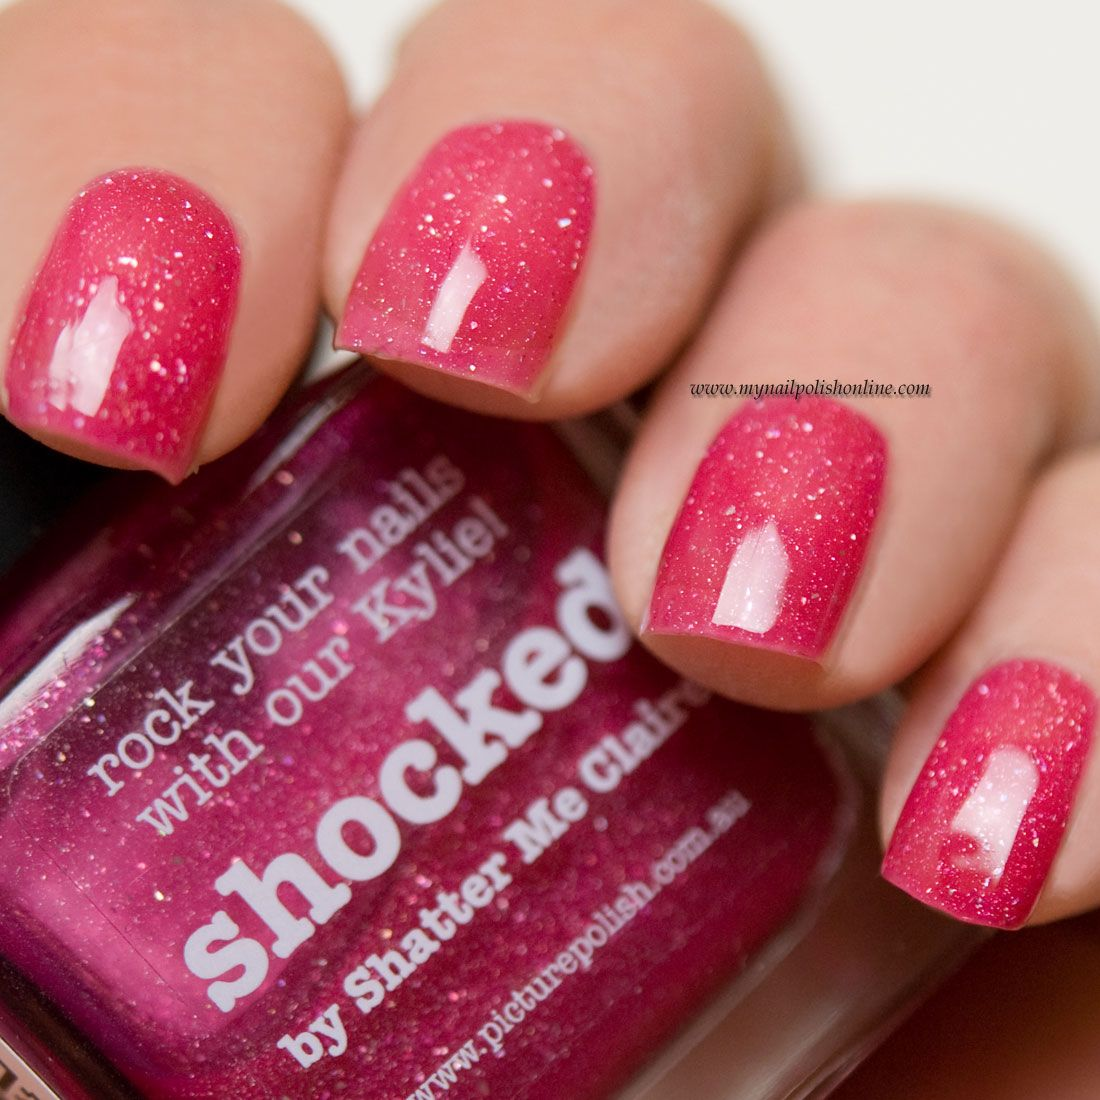 Picture Polish - Shocked - http://www.mynailpolishonline.com/2017/07/picture-polish/picture-polish-shocked/